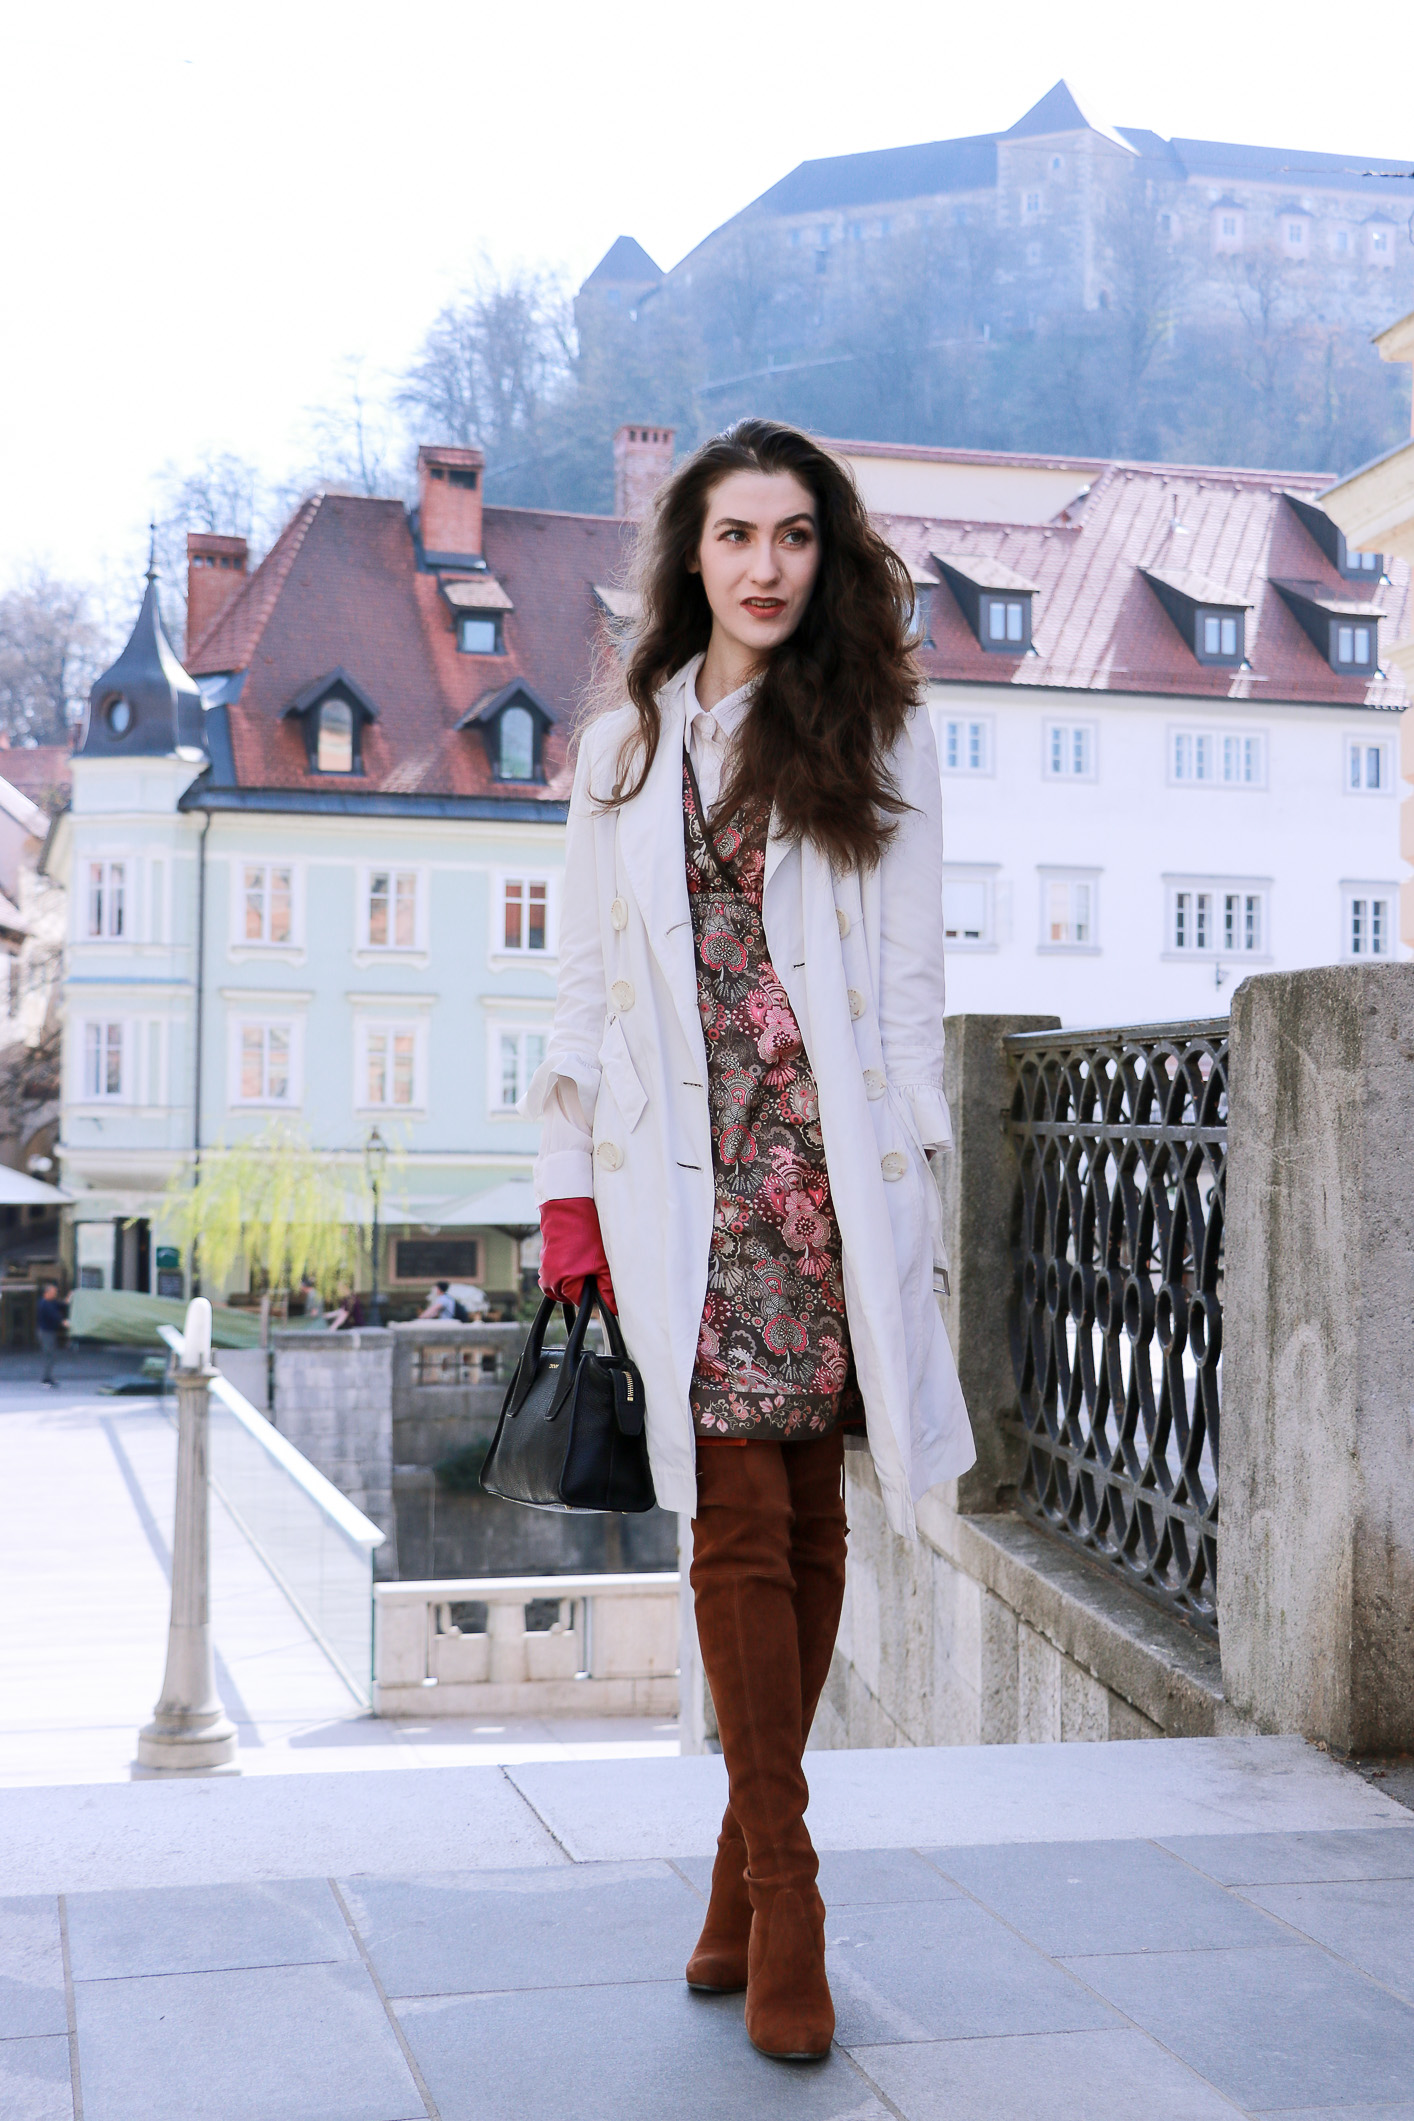 Fashion blogger Veronika Lipar of Brunette From Wall Street on what to wear ruffles this spring